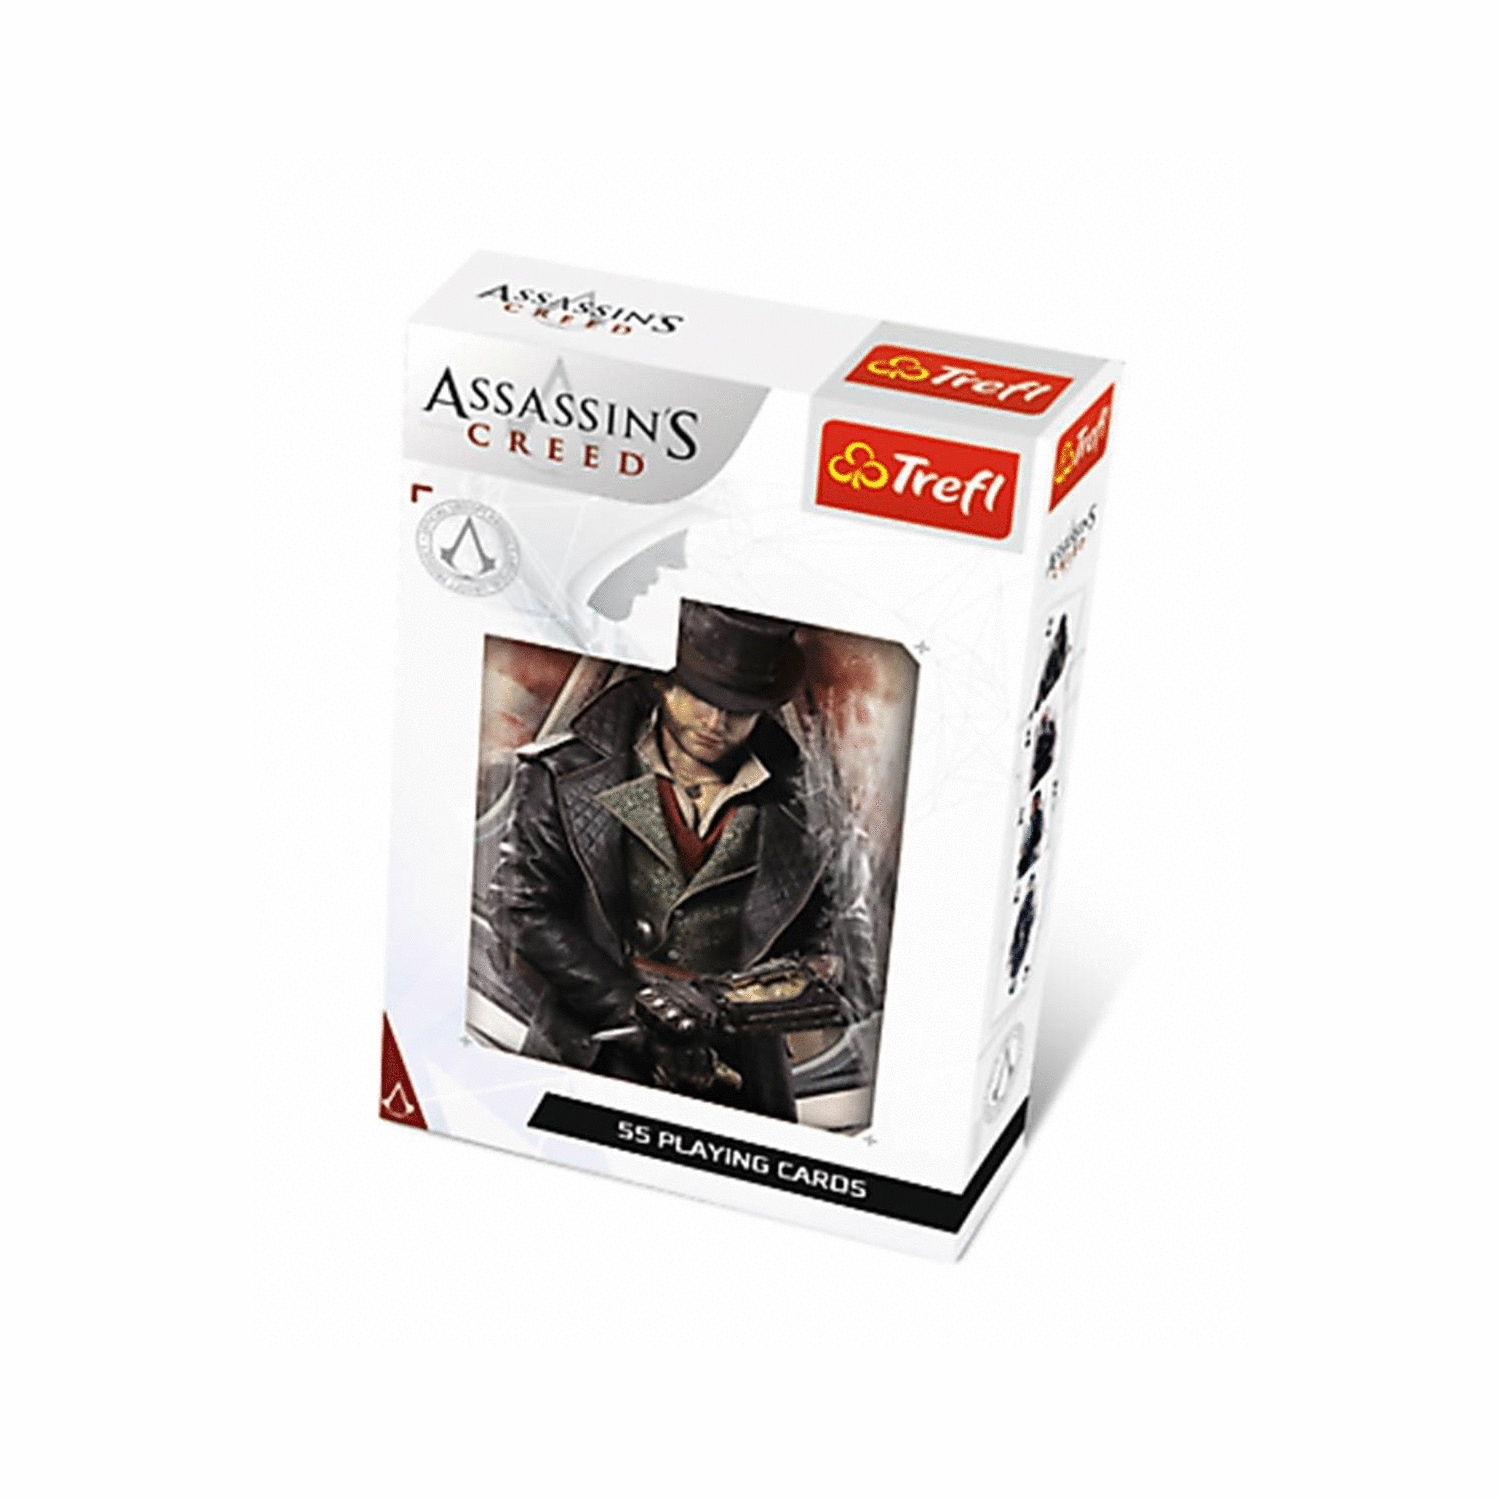 Karty do gry GOOD LOOT Assassin's Creed Playing Cards